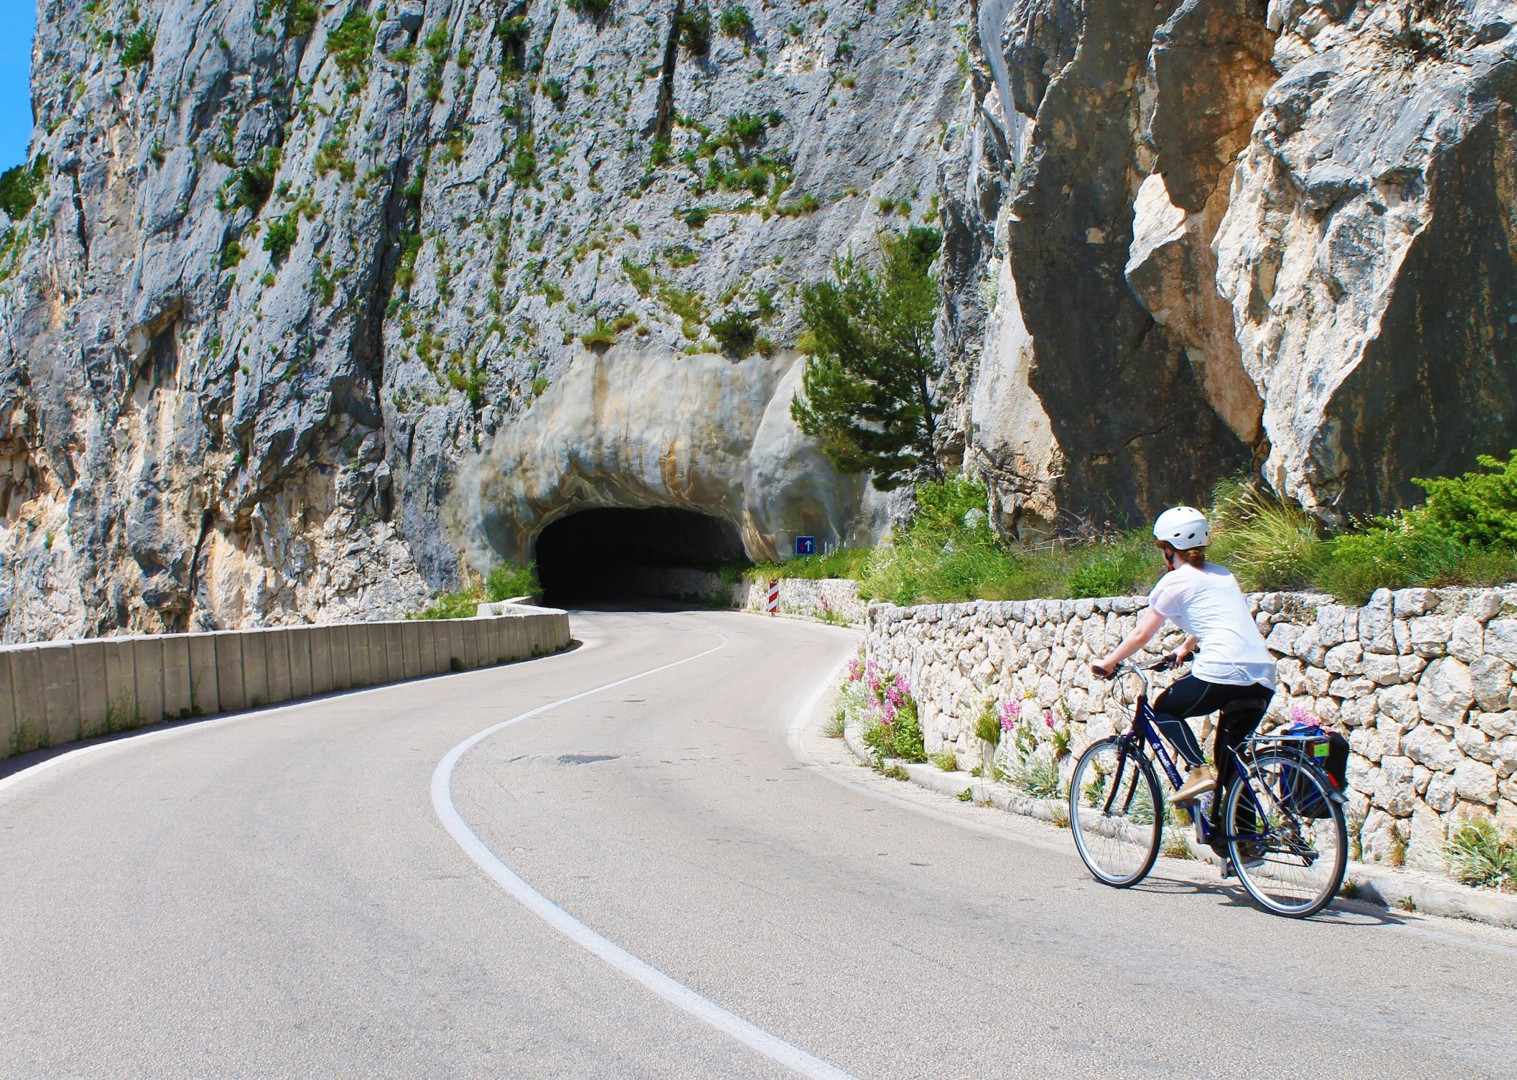 enjoy-leisurely-cycling-southern-dalmatia.jpg - Croatia - Southern Dalmatia - Bike and Boat Holiday - Leisure Cycling